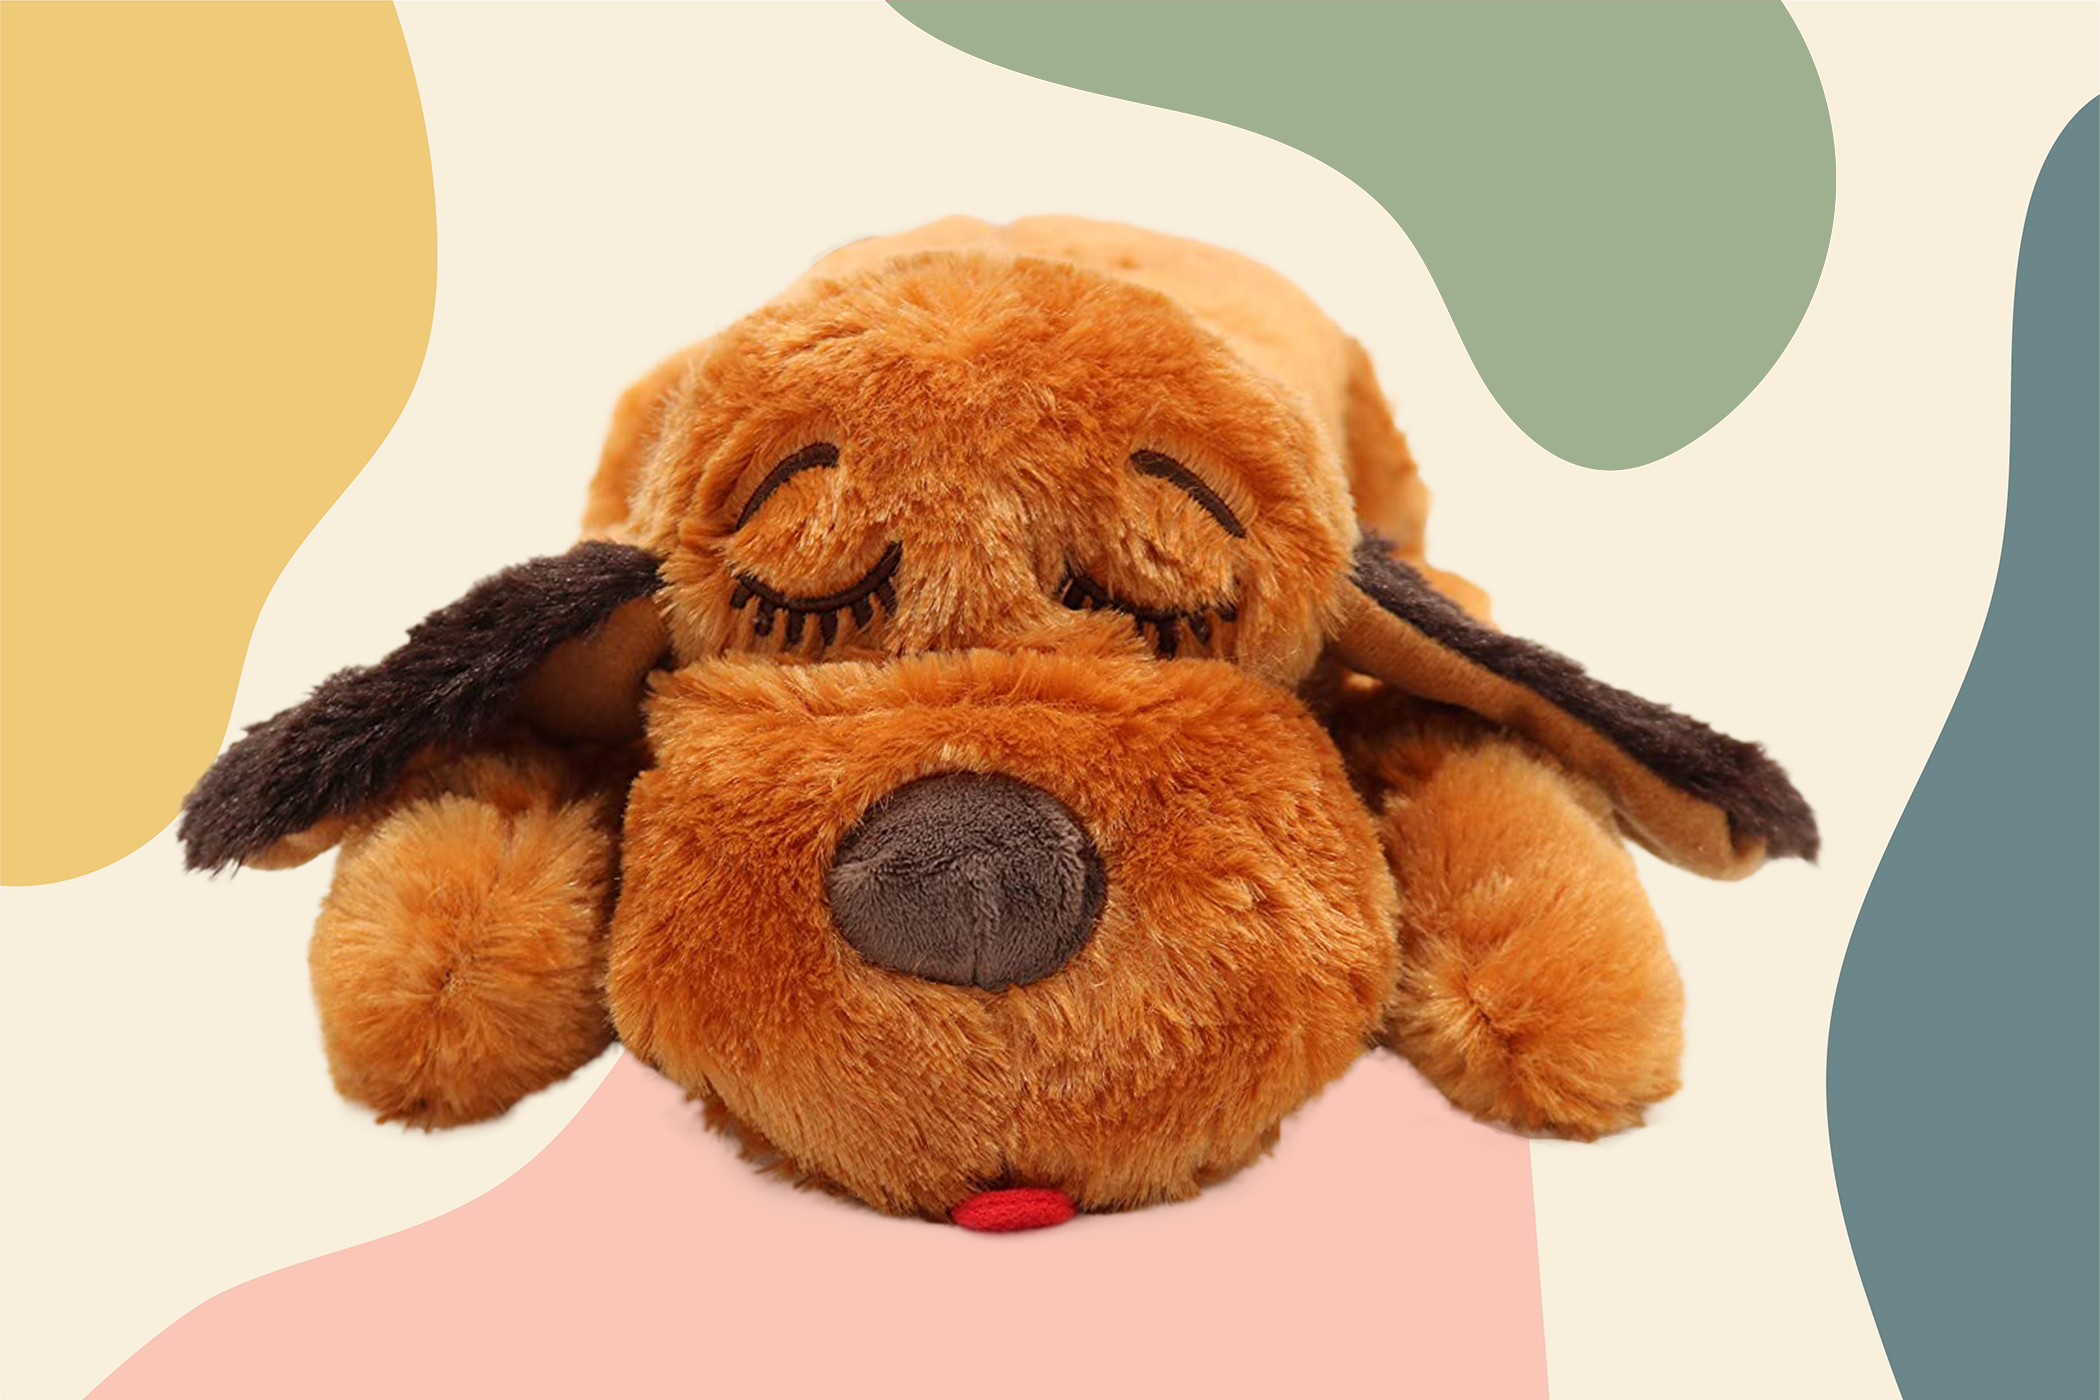 snuggle puppy toy to comfort dogs